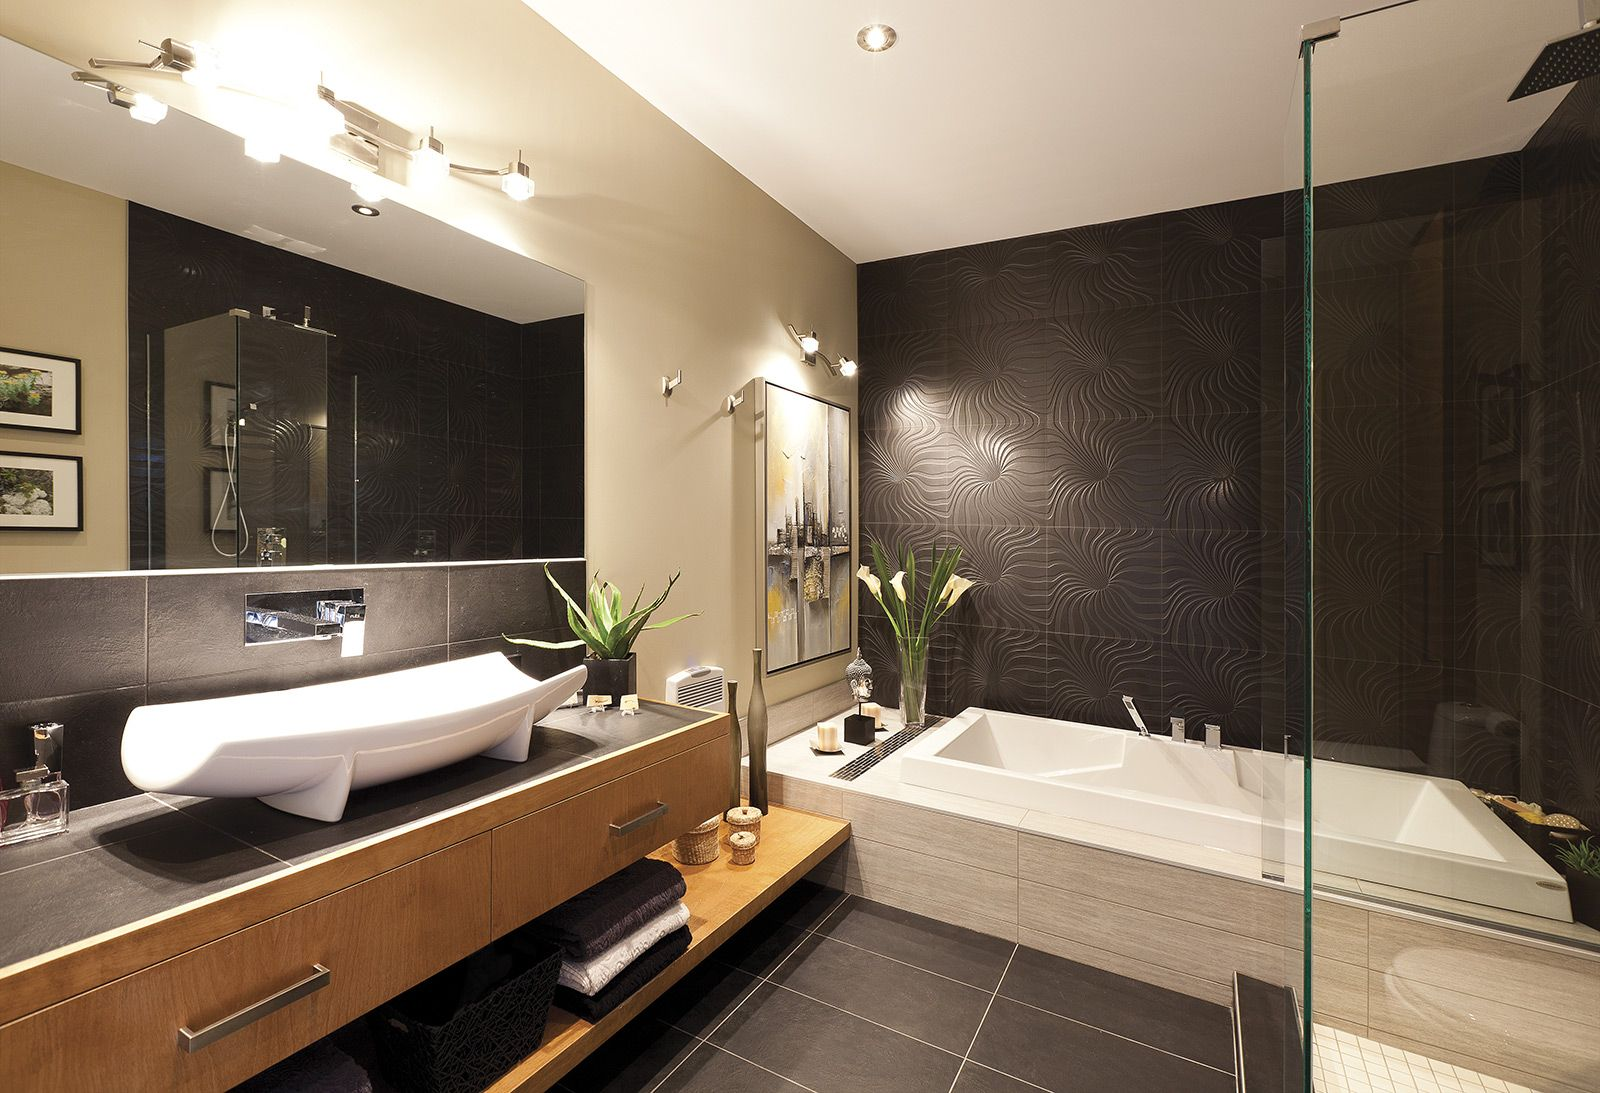 salle de bain archives page 2 sur 3 griffe cuisine. Black Bedroom Furniture Sets. Home Design Ideas